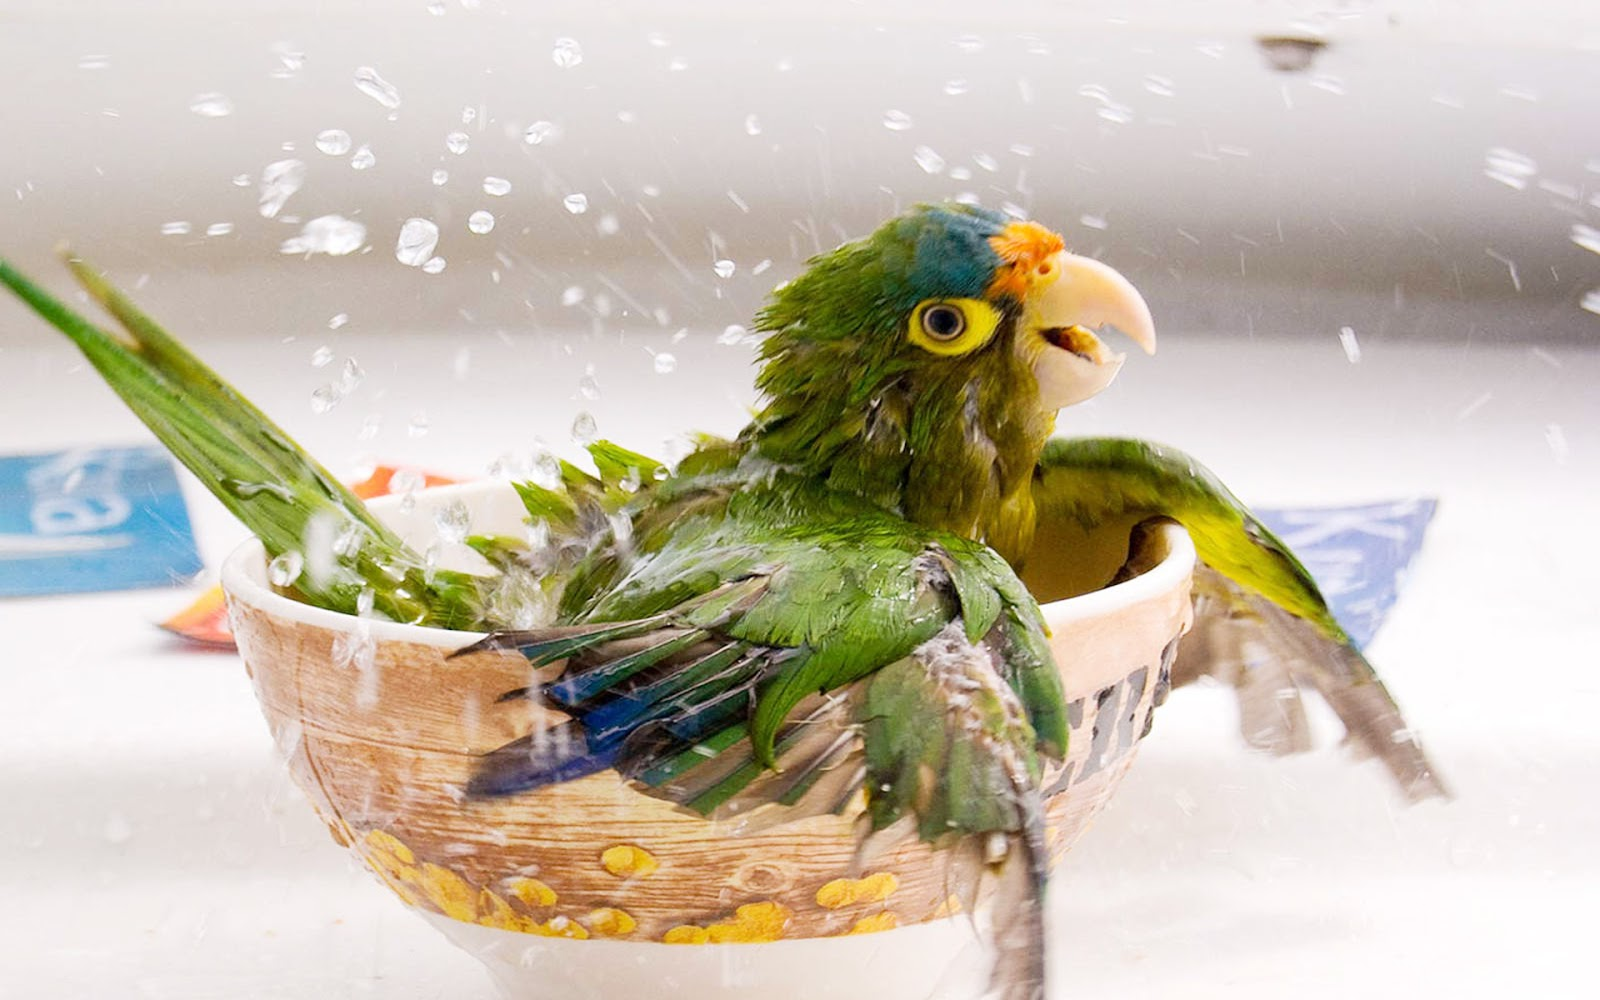 Lovely Wallpapers Little Cute Animals Wallpapers 2013 1600x1000